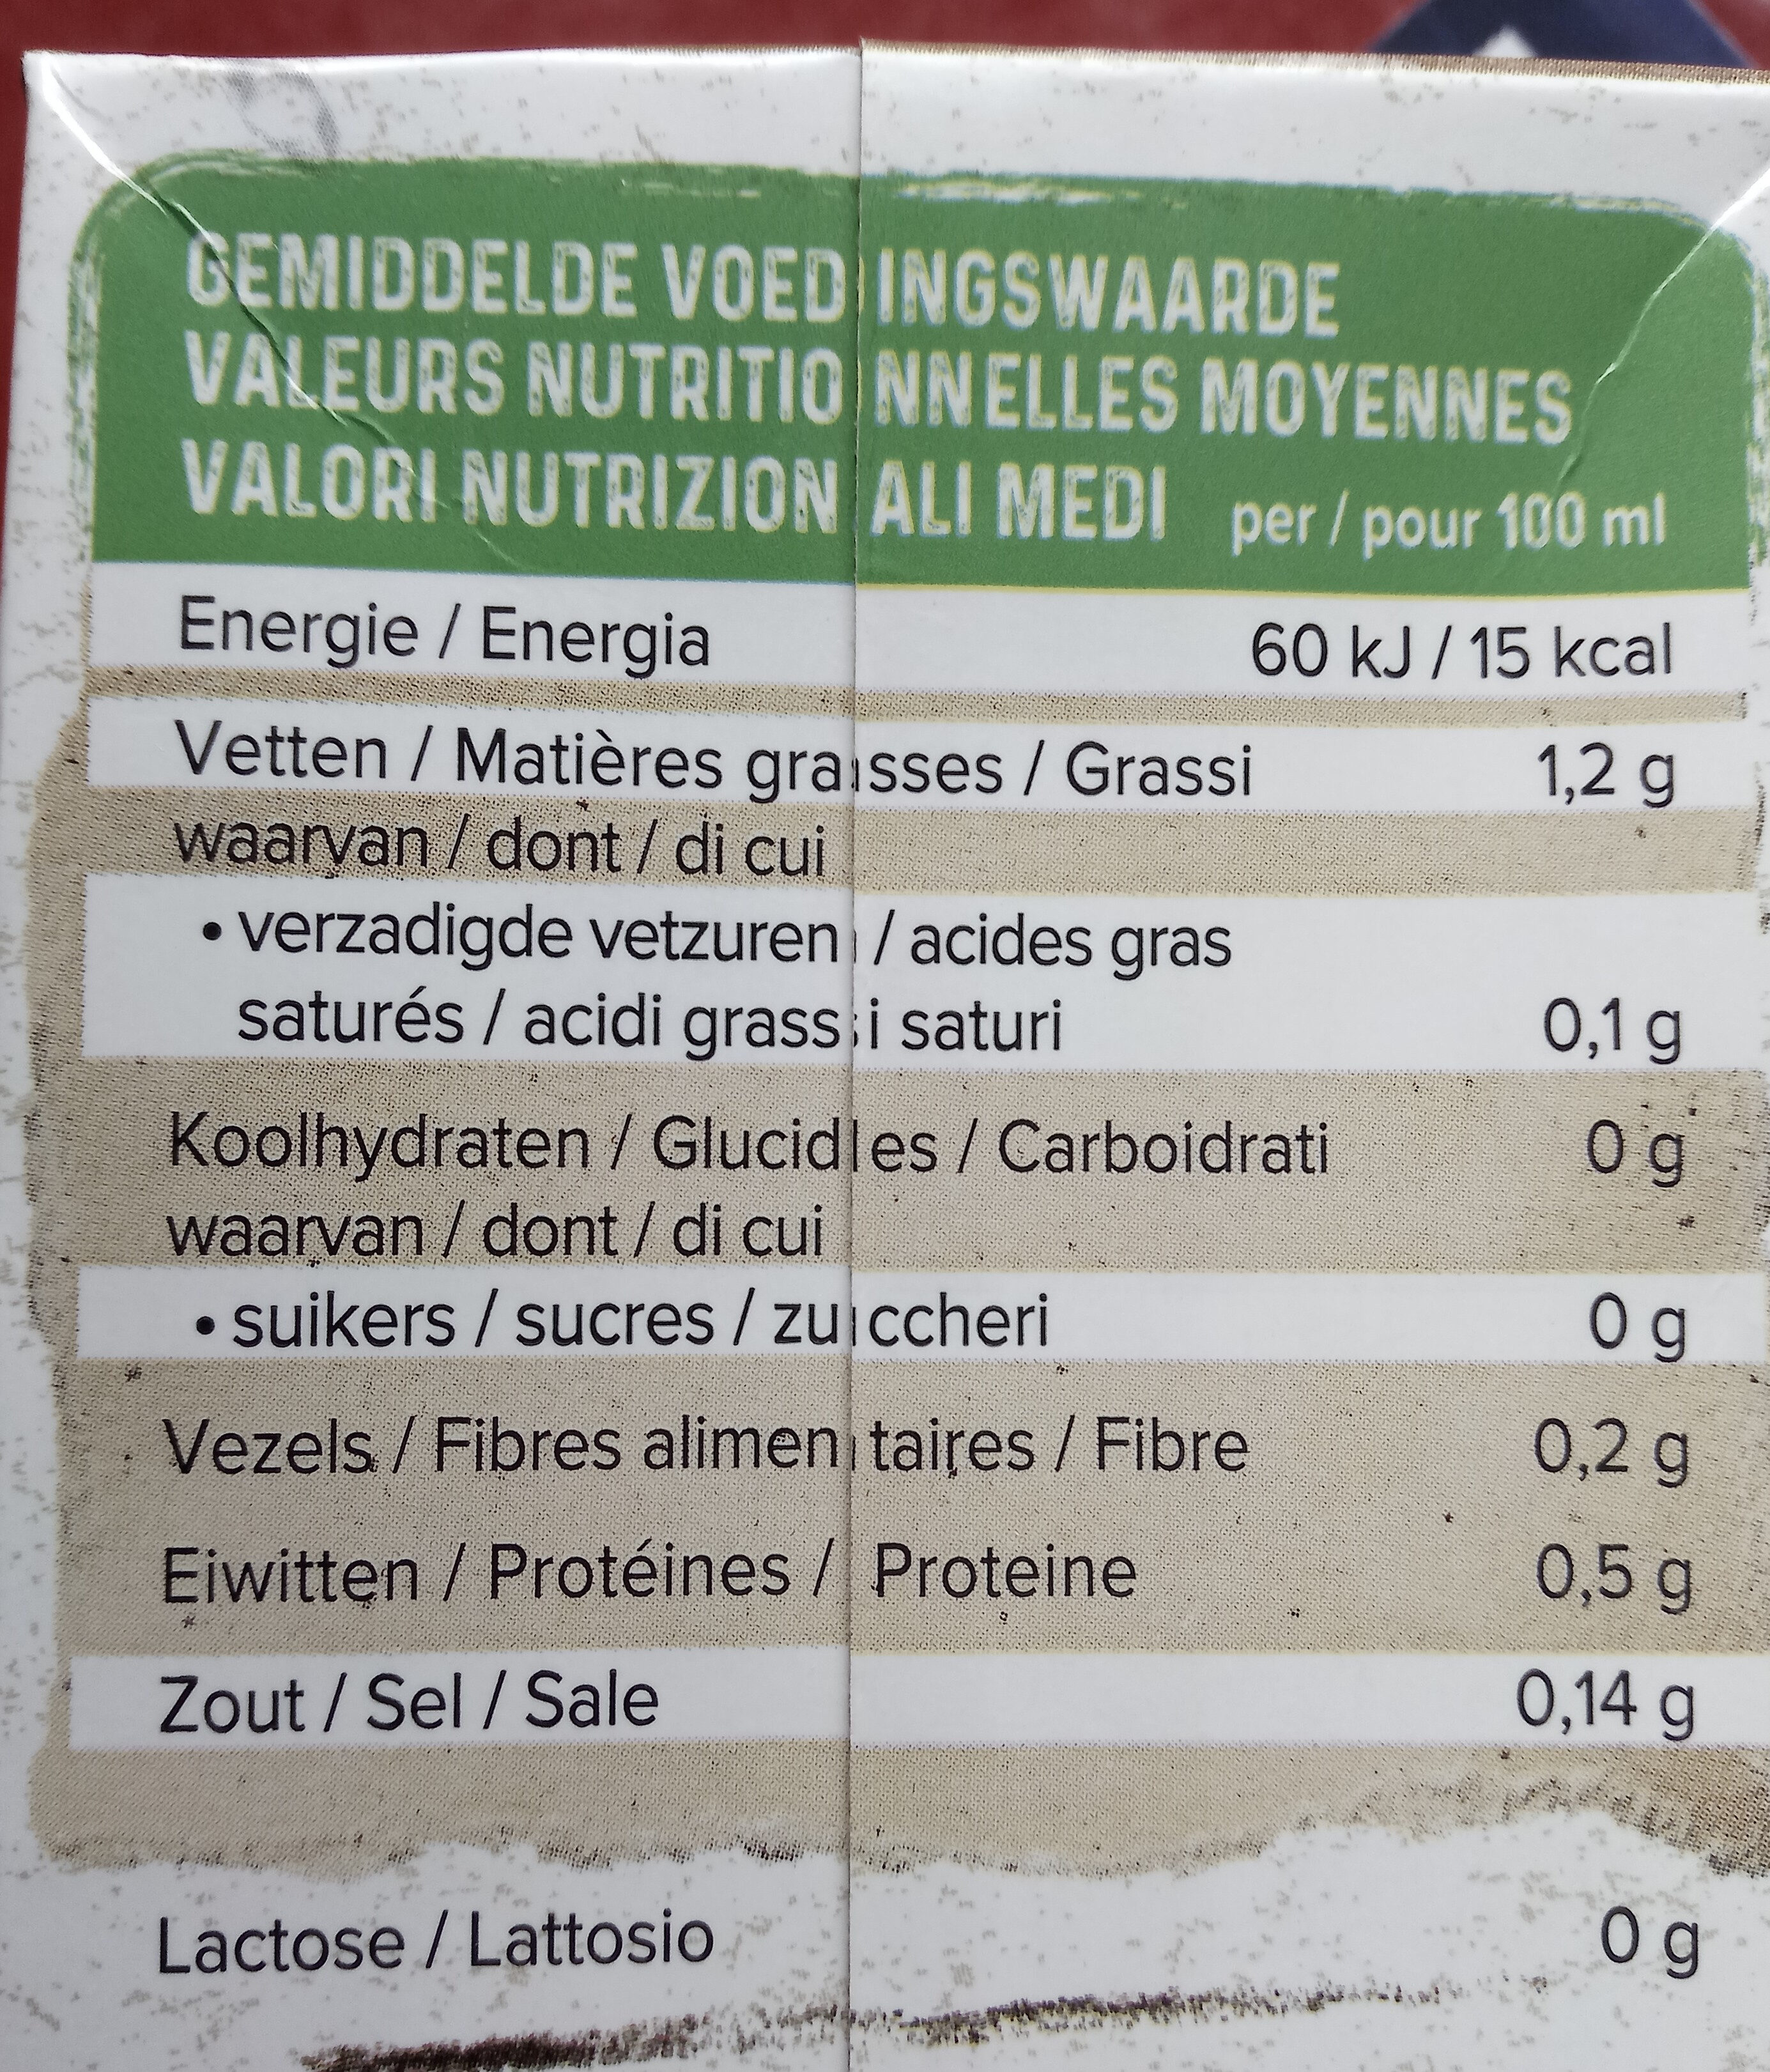 Organic Almond Unsweetened U.H.T. - Informations nutritionnelles